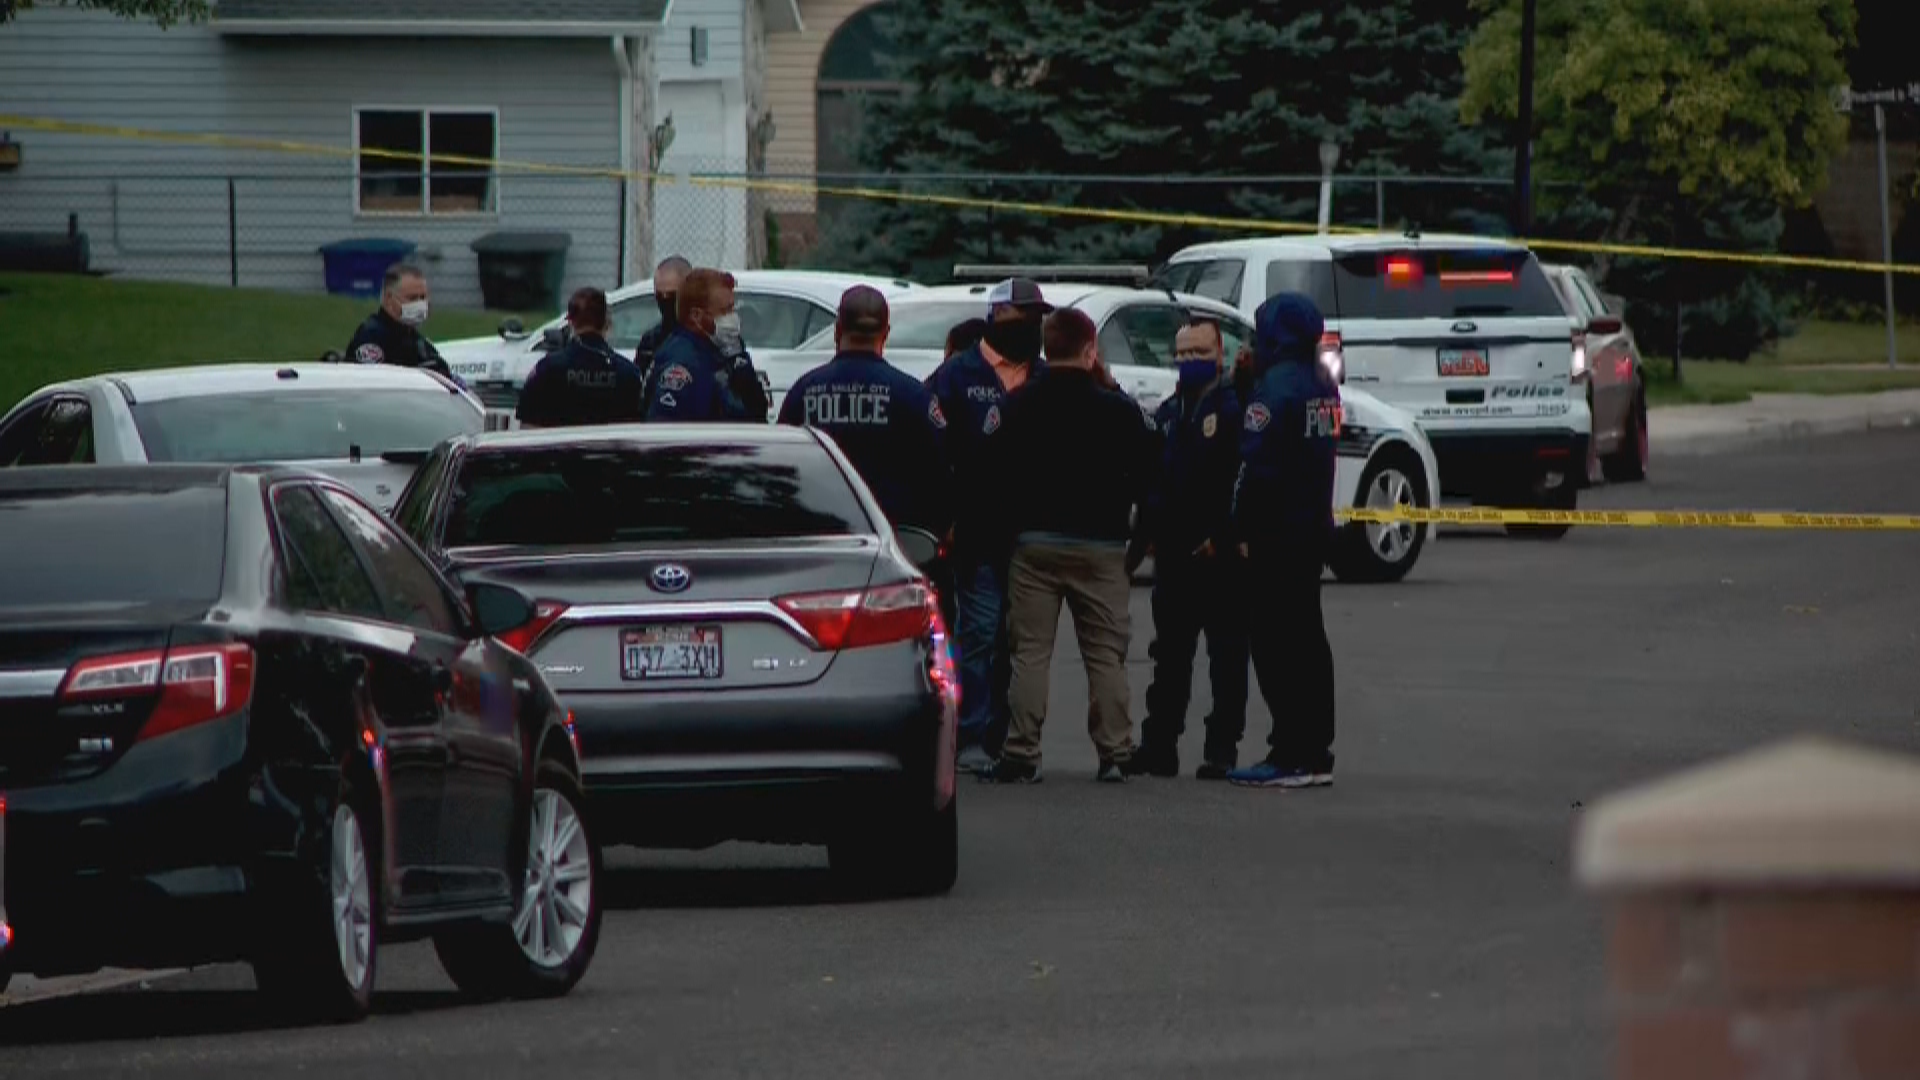 Police and investigators convene at the scene of 17-year-old Edwin Reyes's shooting death near Peachwood Park in West Valley City on June 28, 2020. (Photo: KUTV)